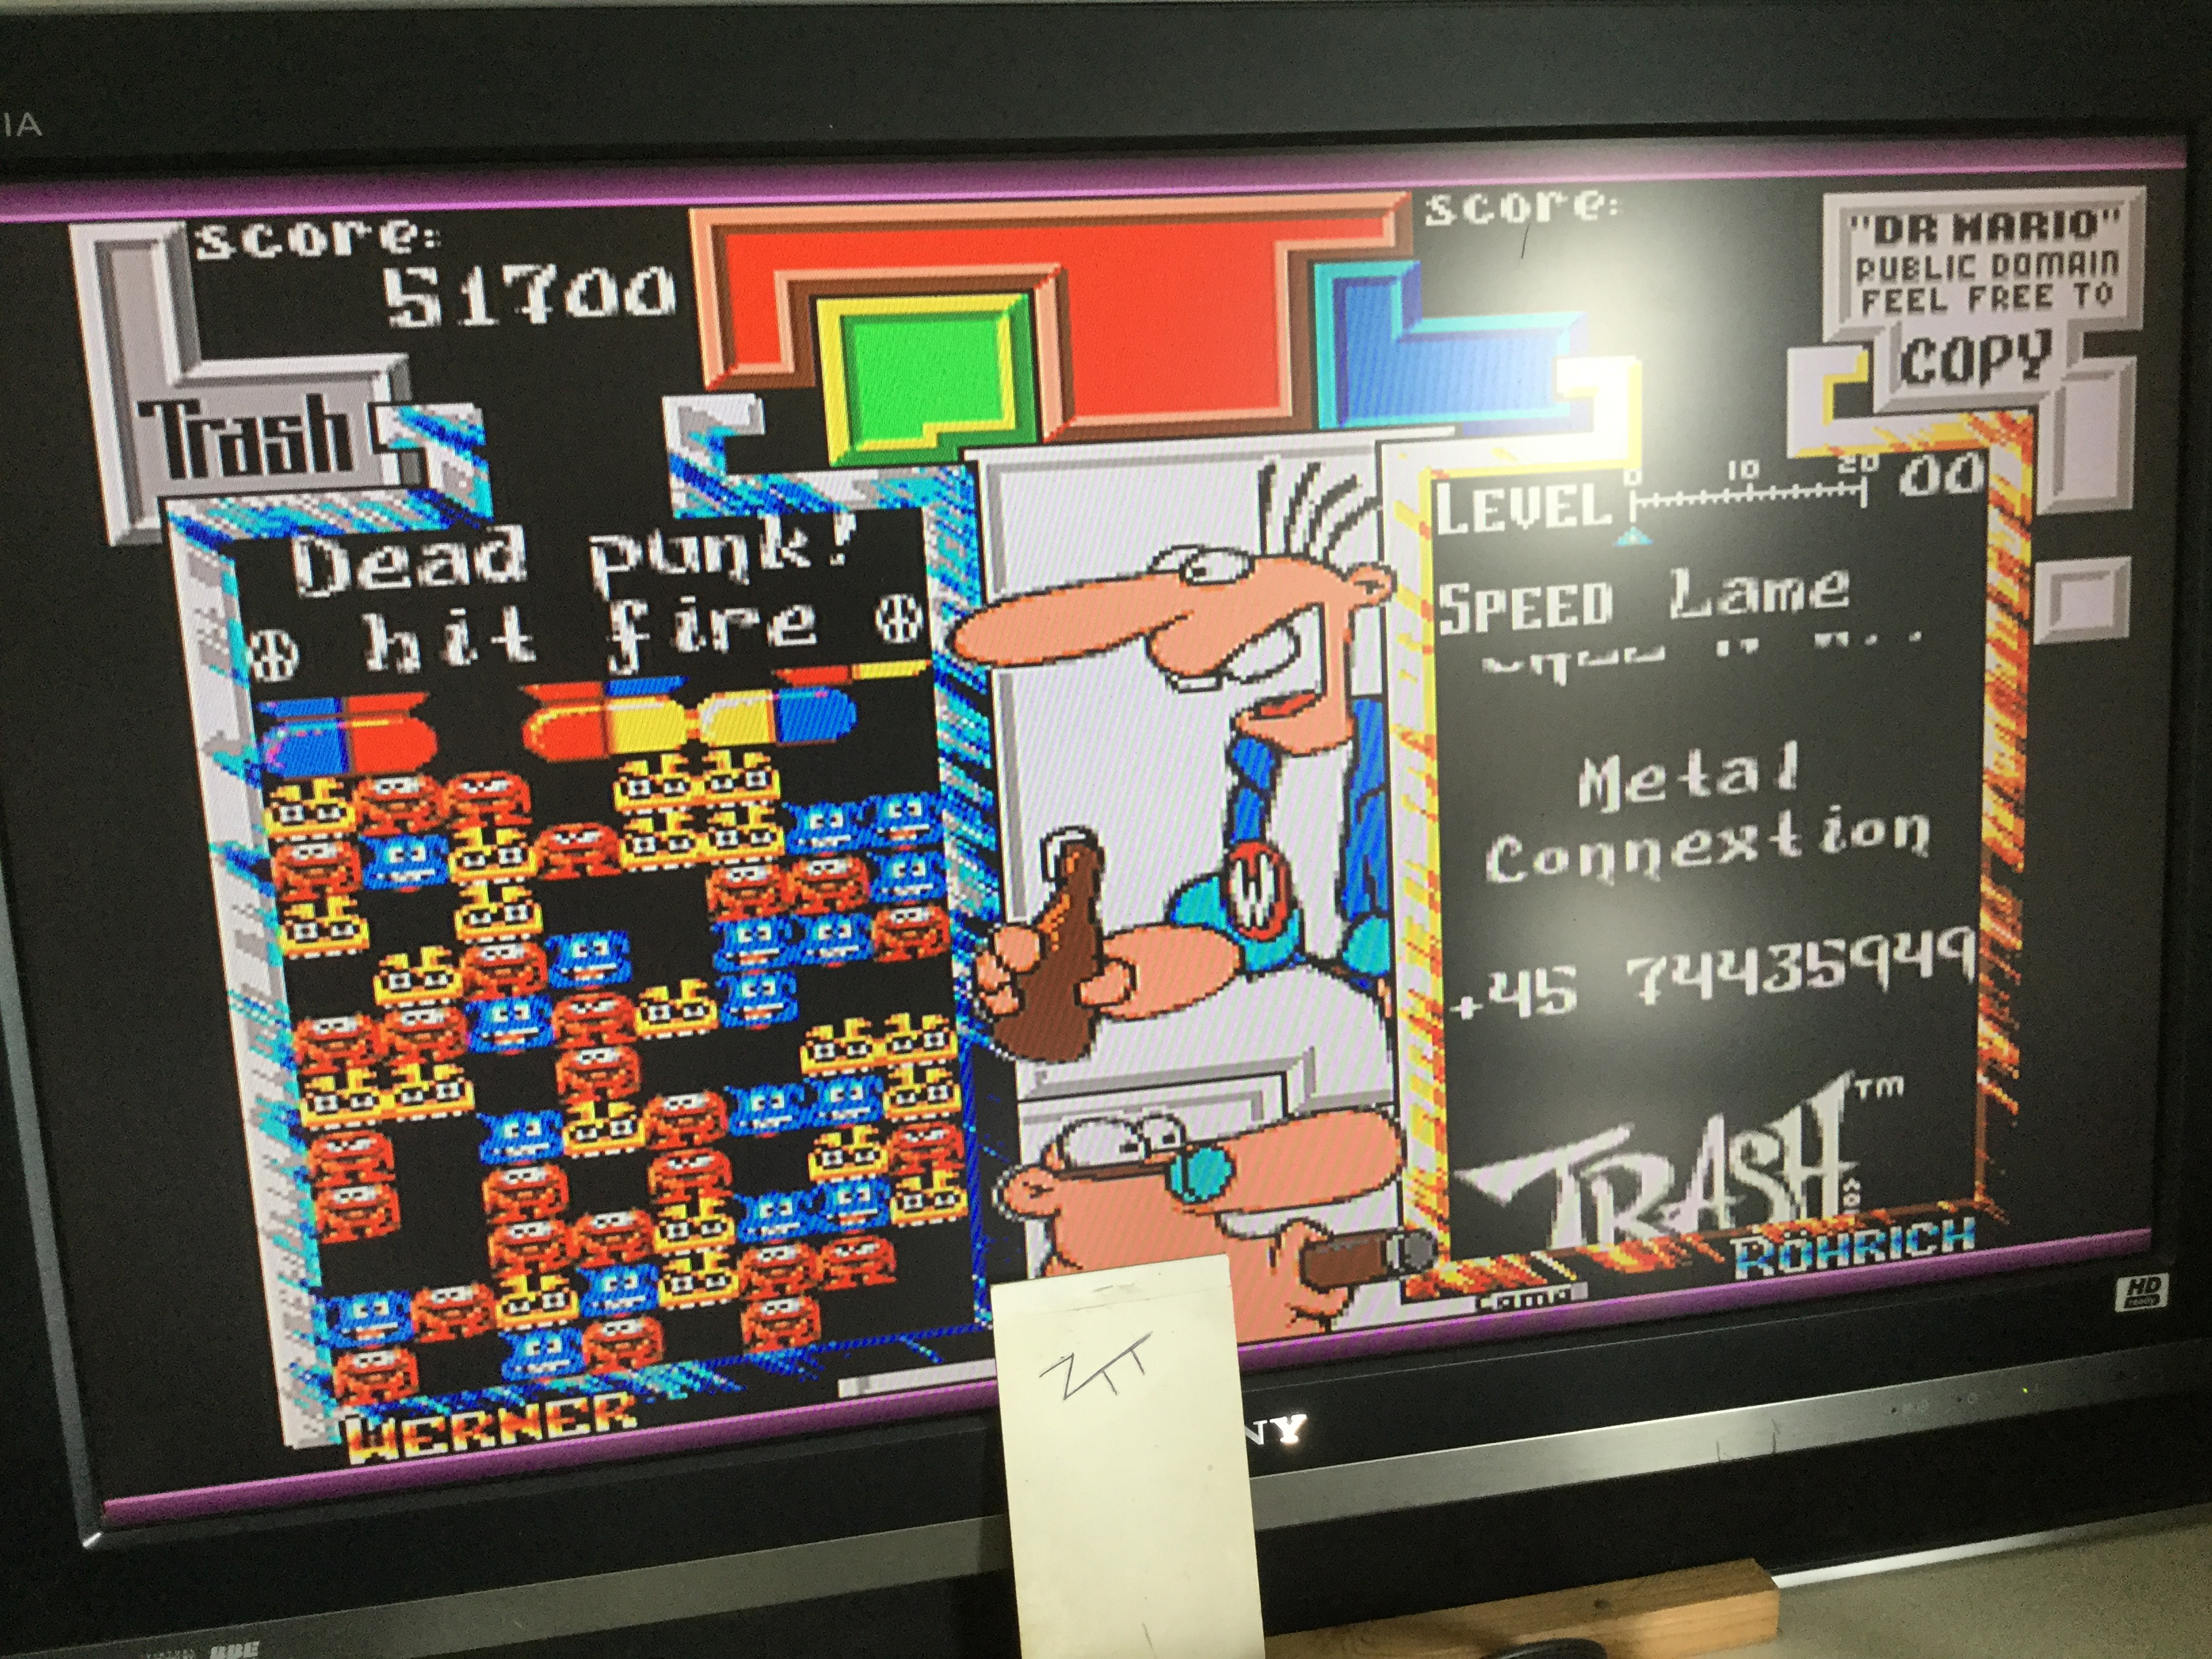 Dr. Mario 51,700 points